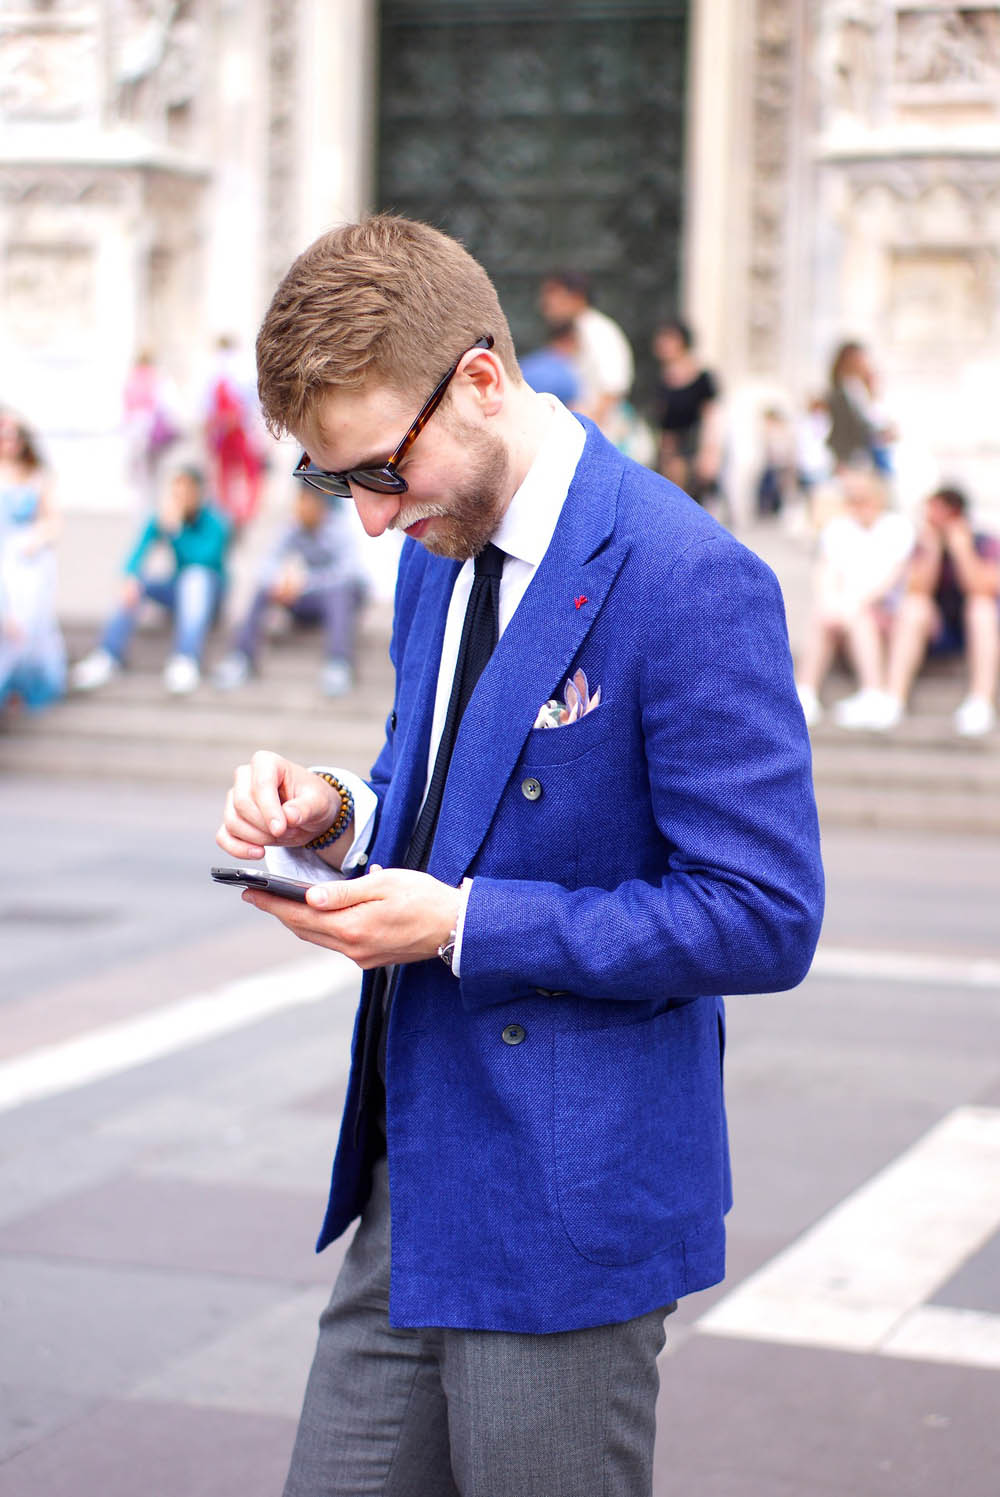 Blue Linen Tweed Suit mens fashion streetwear